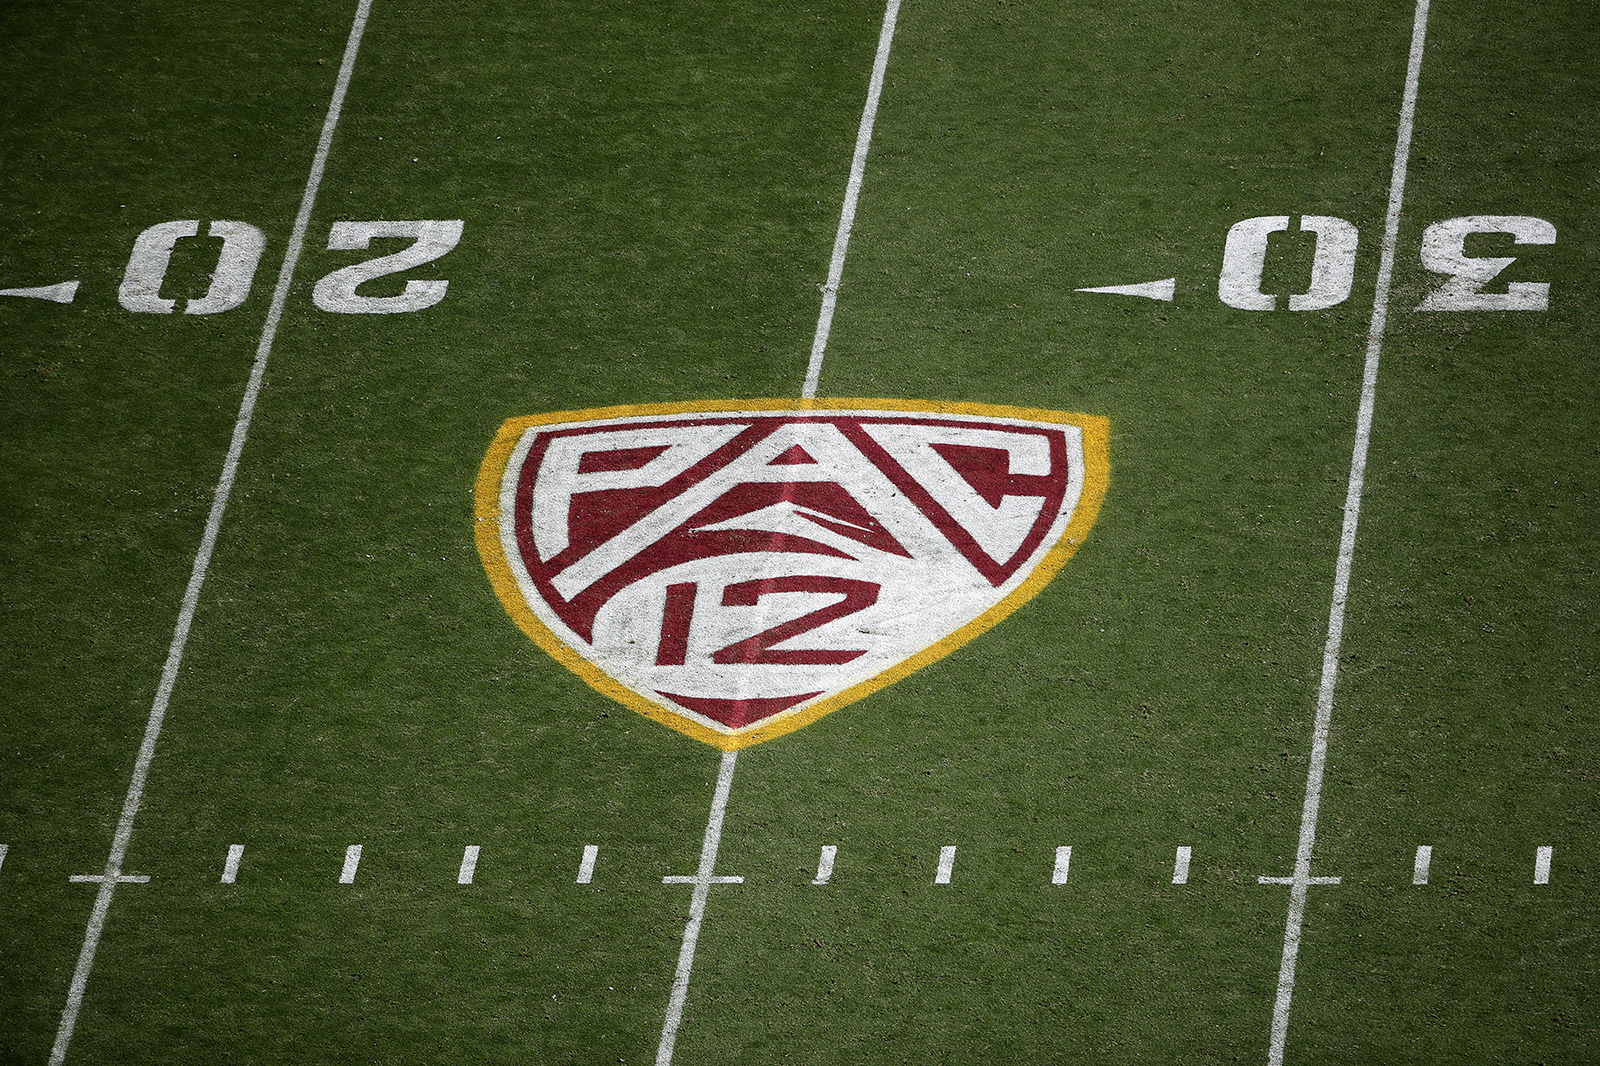 Pac-12 logo on the field during the NCAAF game at Sun Devil Stadium on November 9, 2019 in Tempe, Arizona.